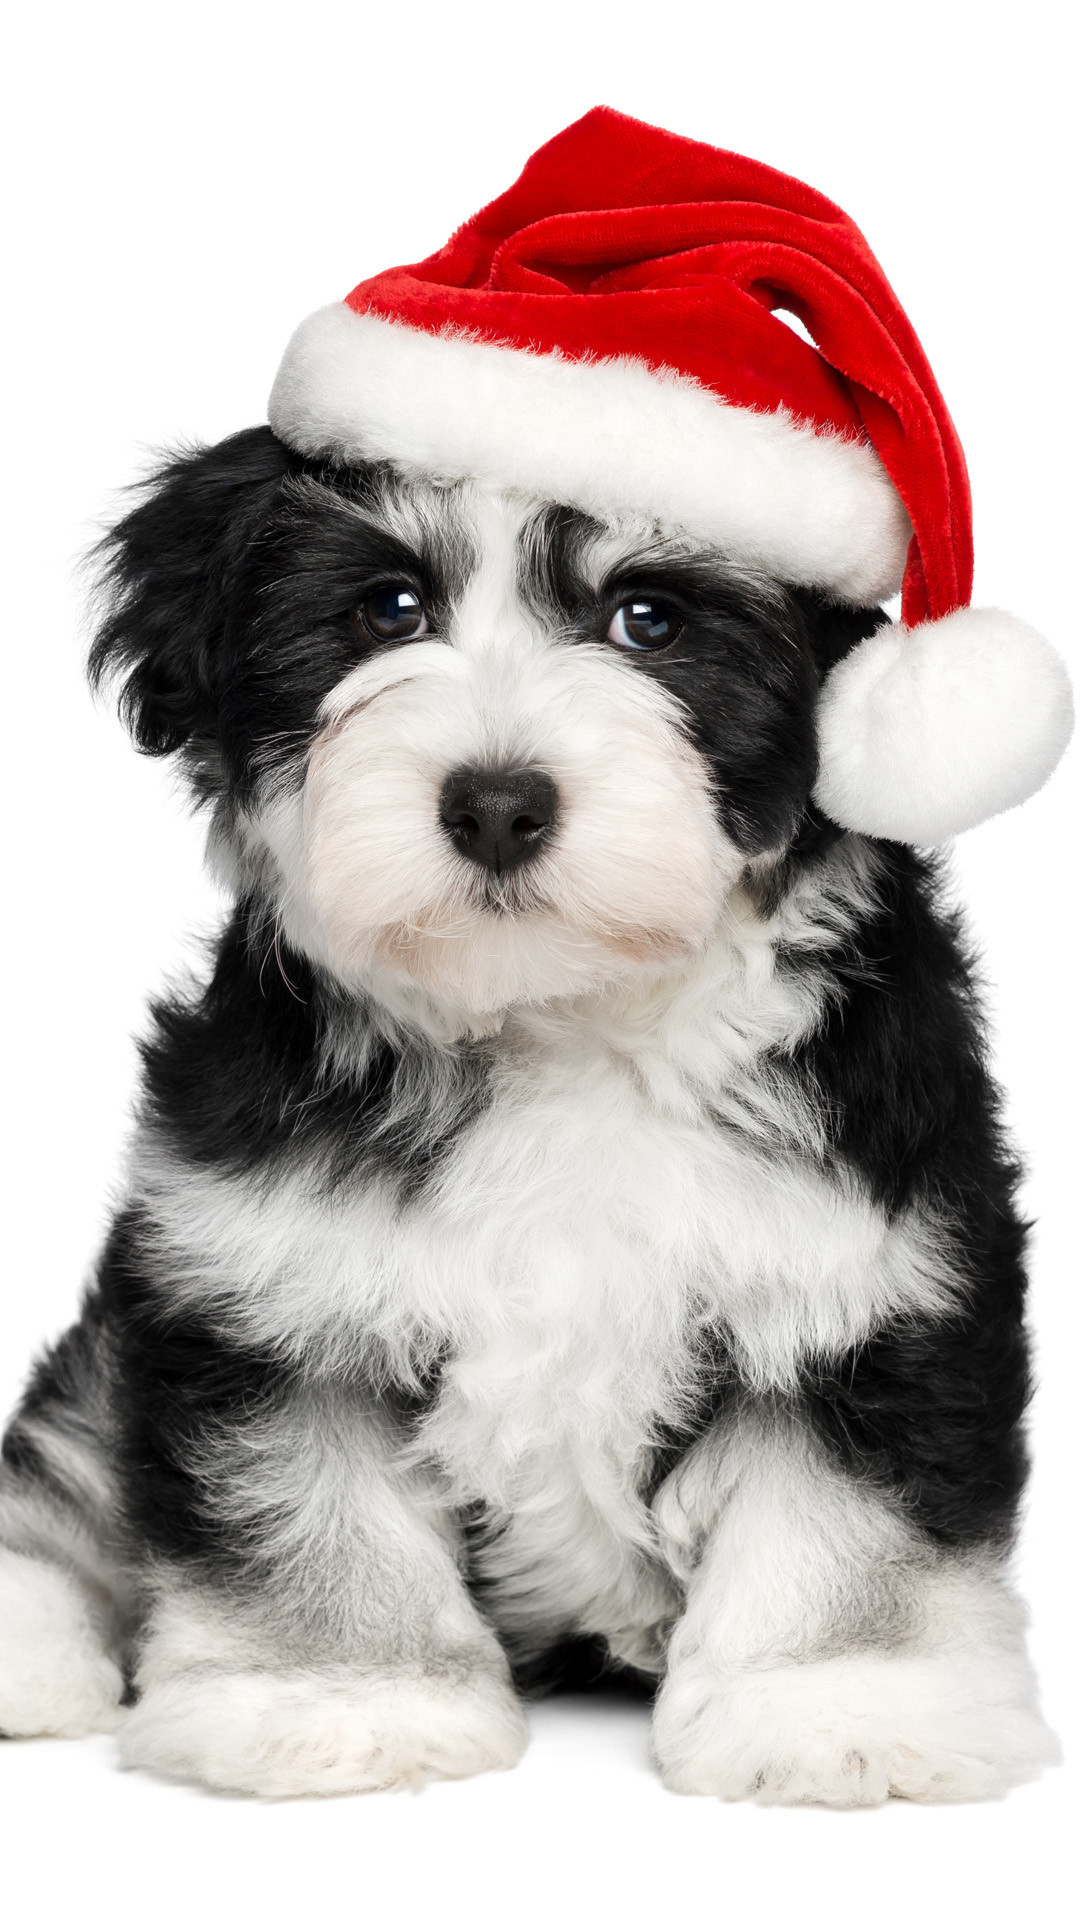 Cute Puppy Wallpapers For Iphone Christmas Puppy Wallpaper 48 Images